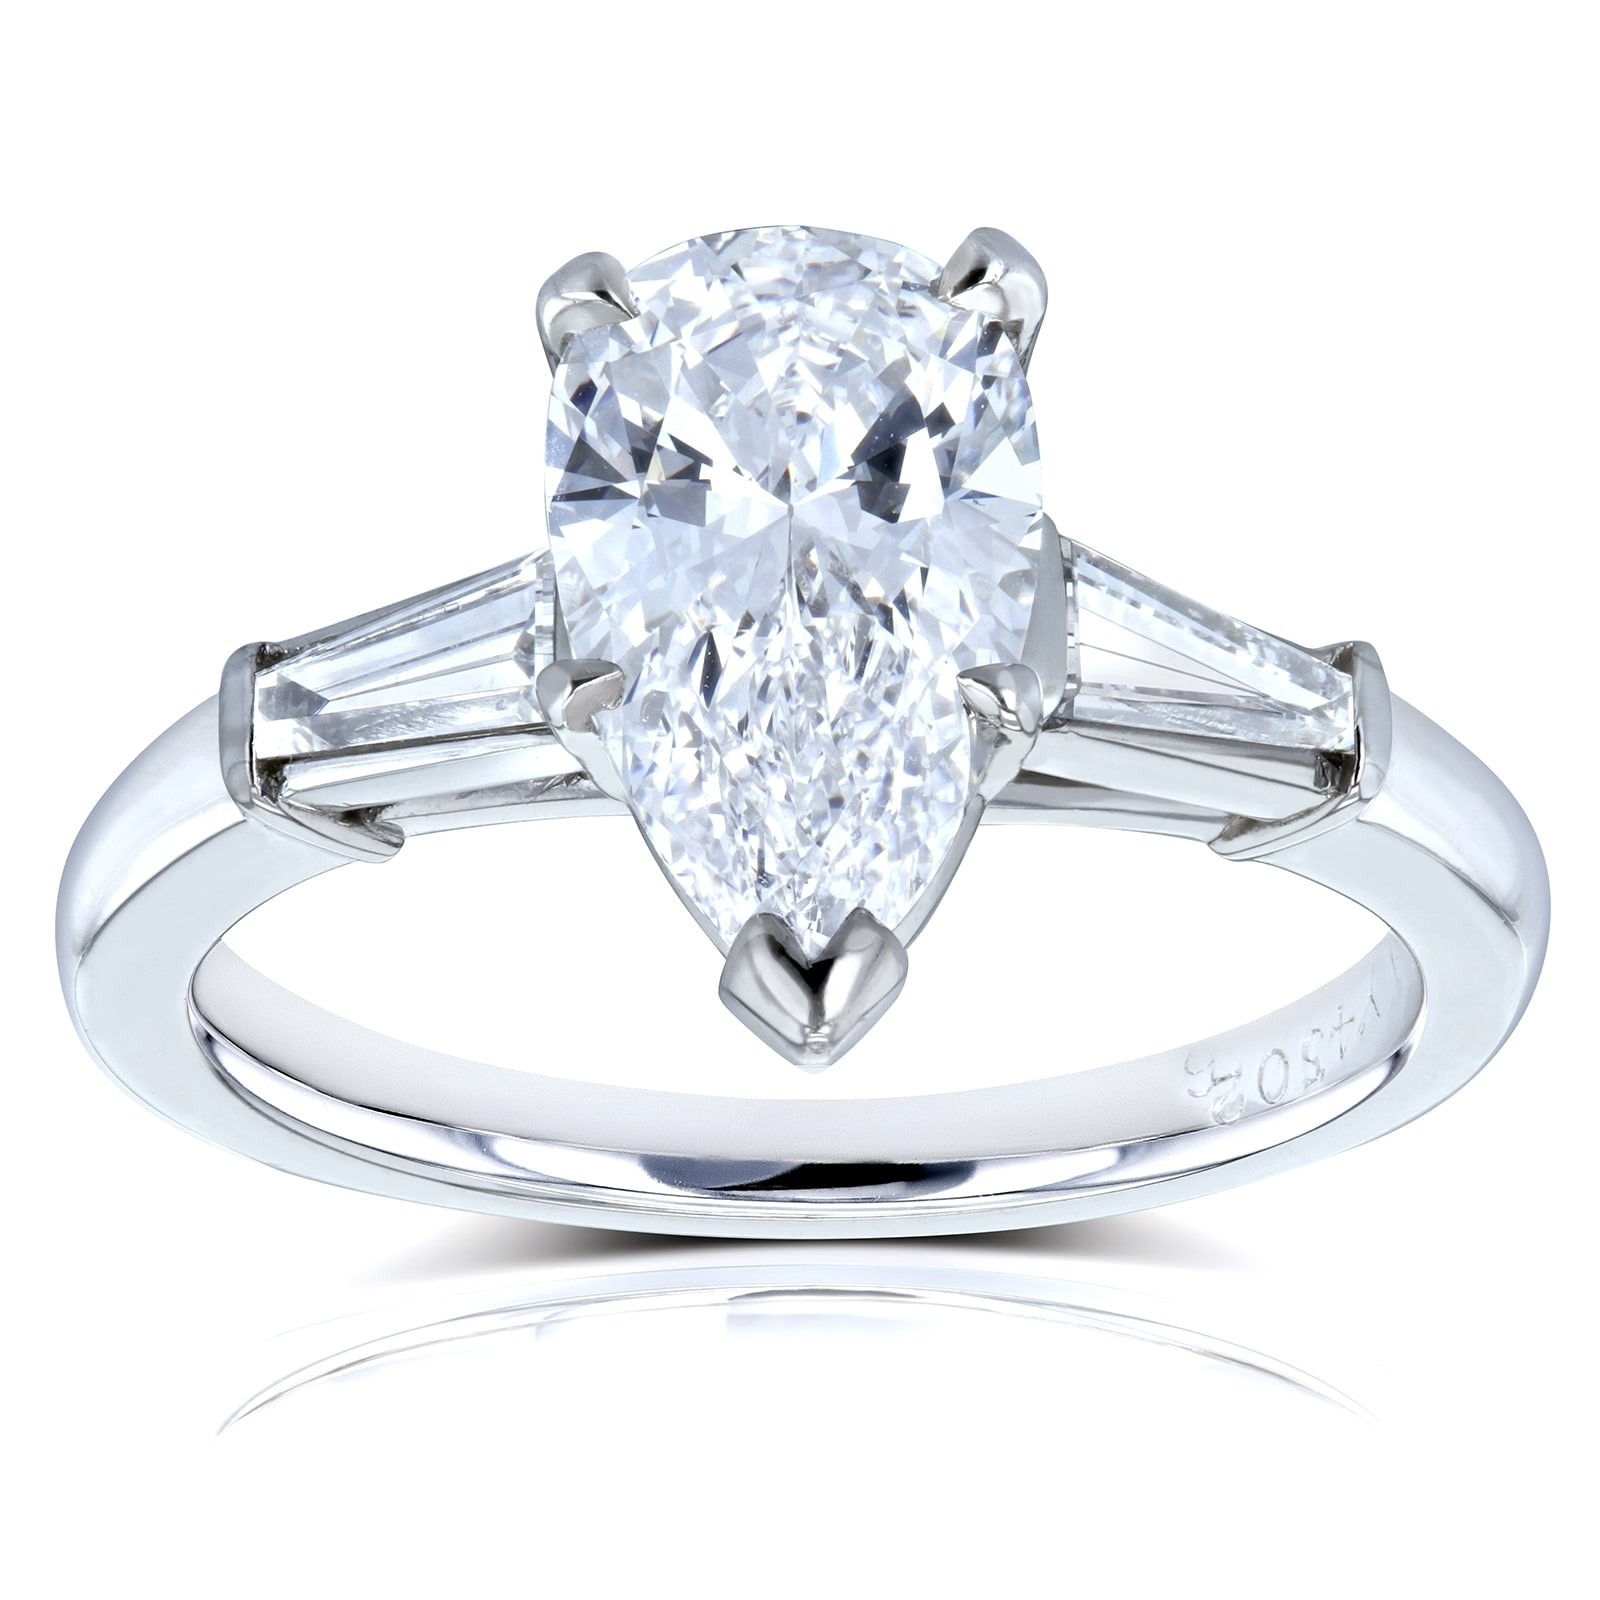 round ring rings pin promise engagement carat cut solitaire flawless diamond wedding simulant